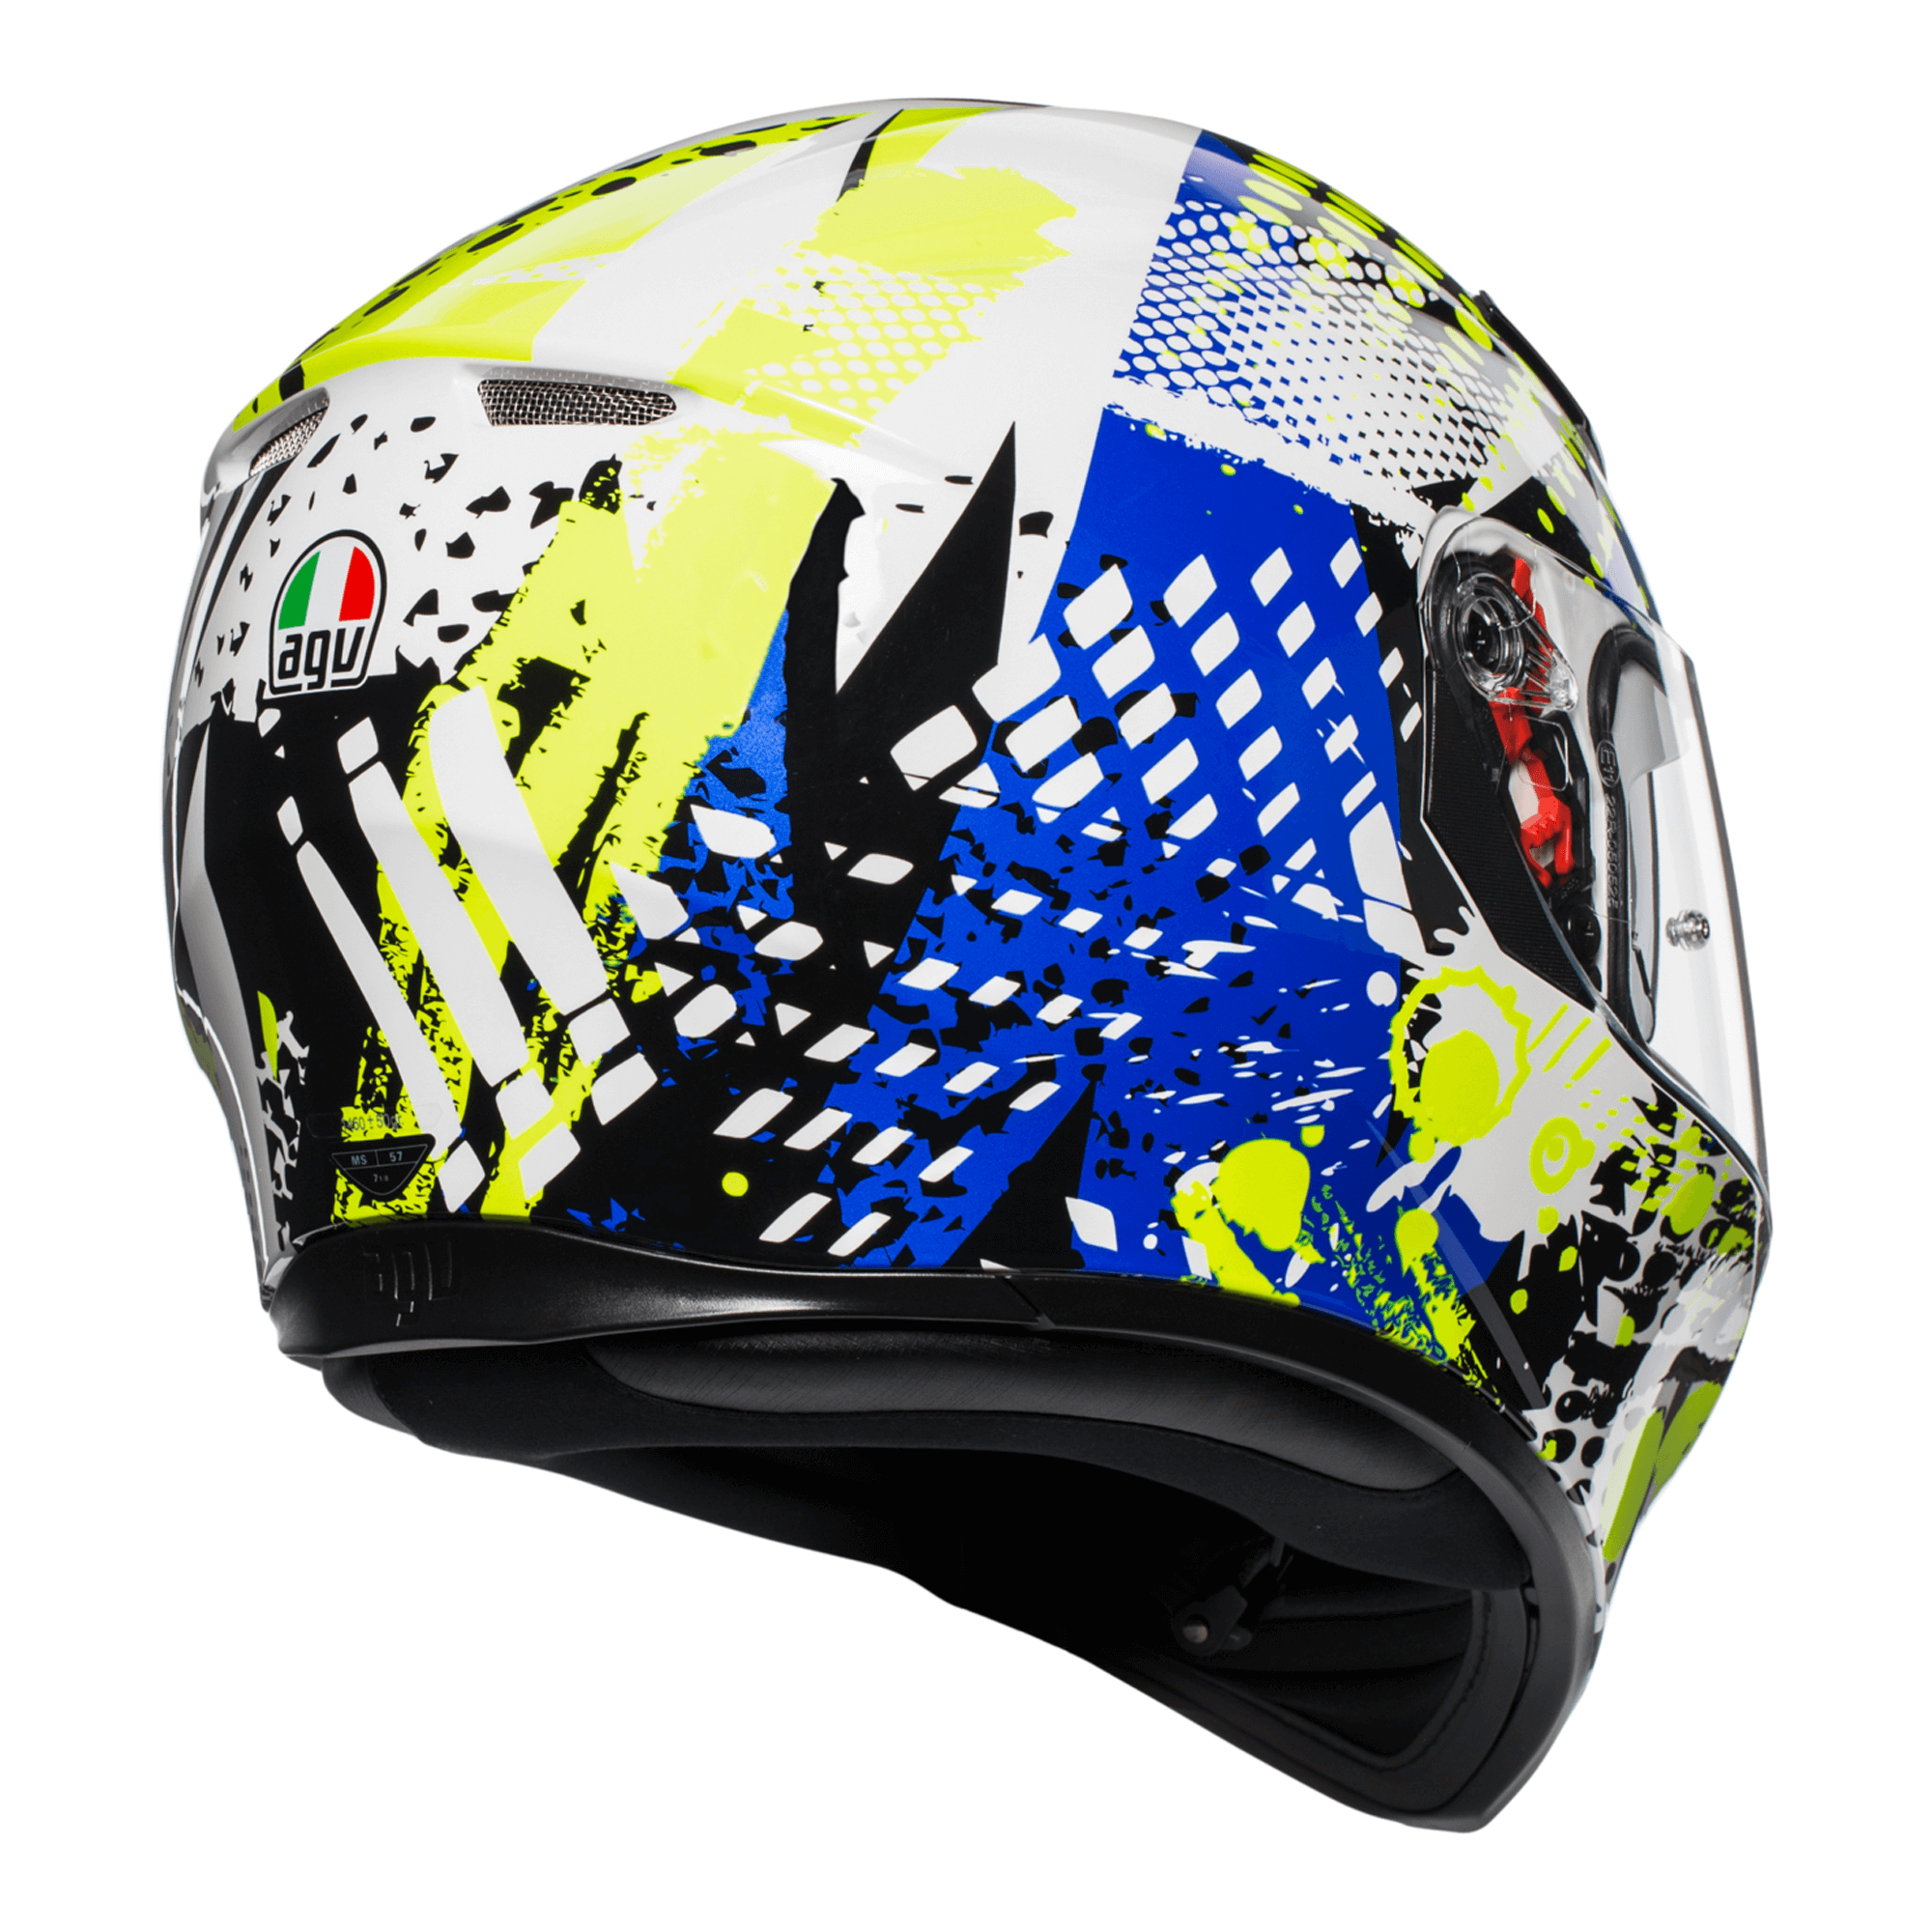 agv on Twitter: AGV Corsa Winter Test @ValeYellow46 Limited Edition details announced! #